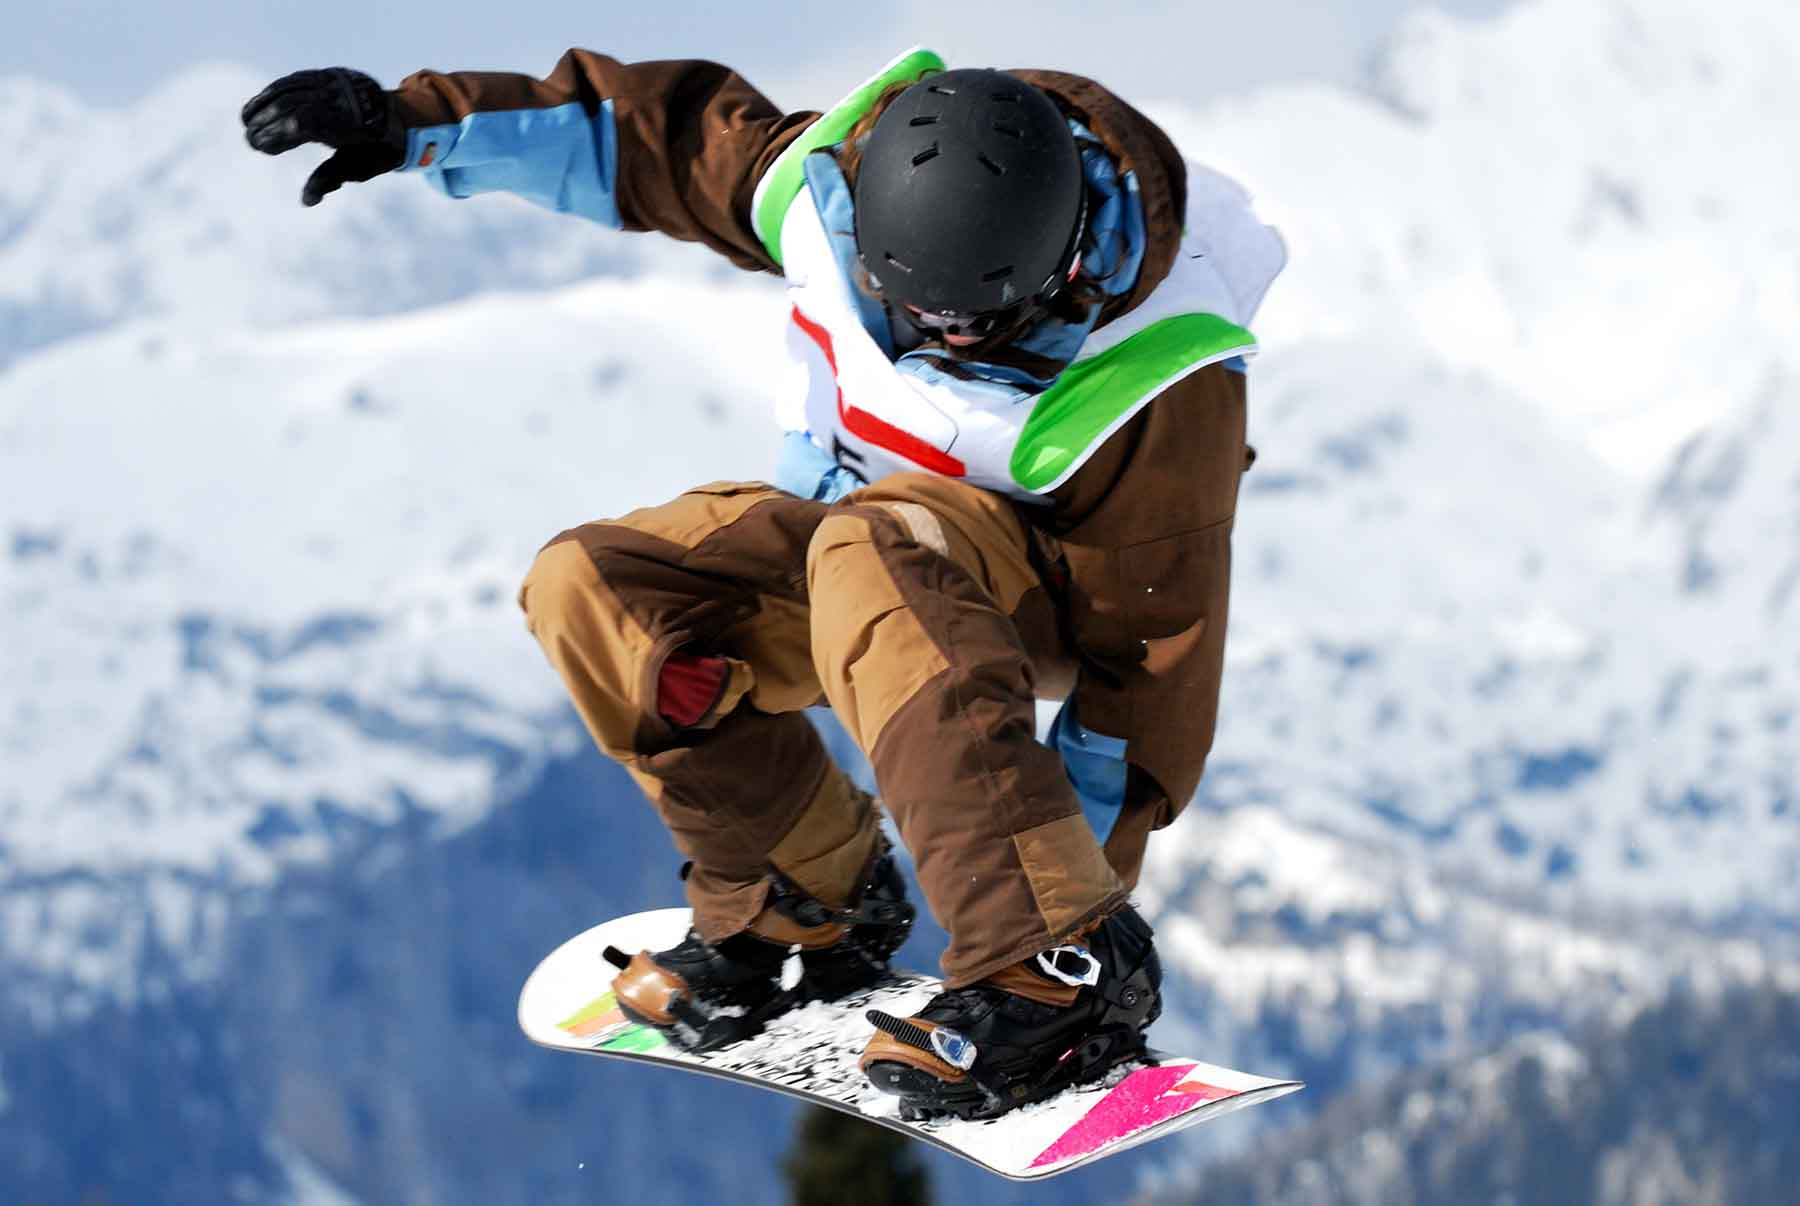 Snowboarder going down the mountain